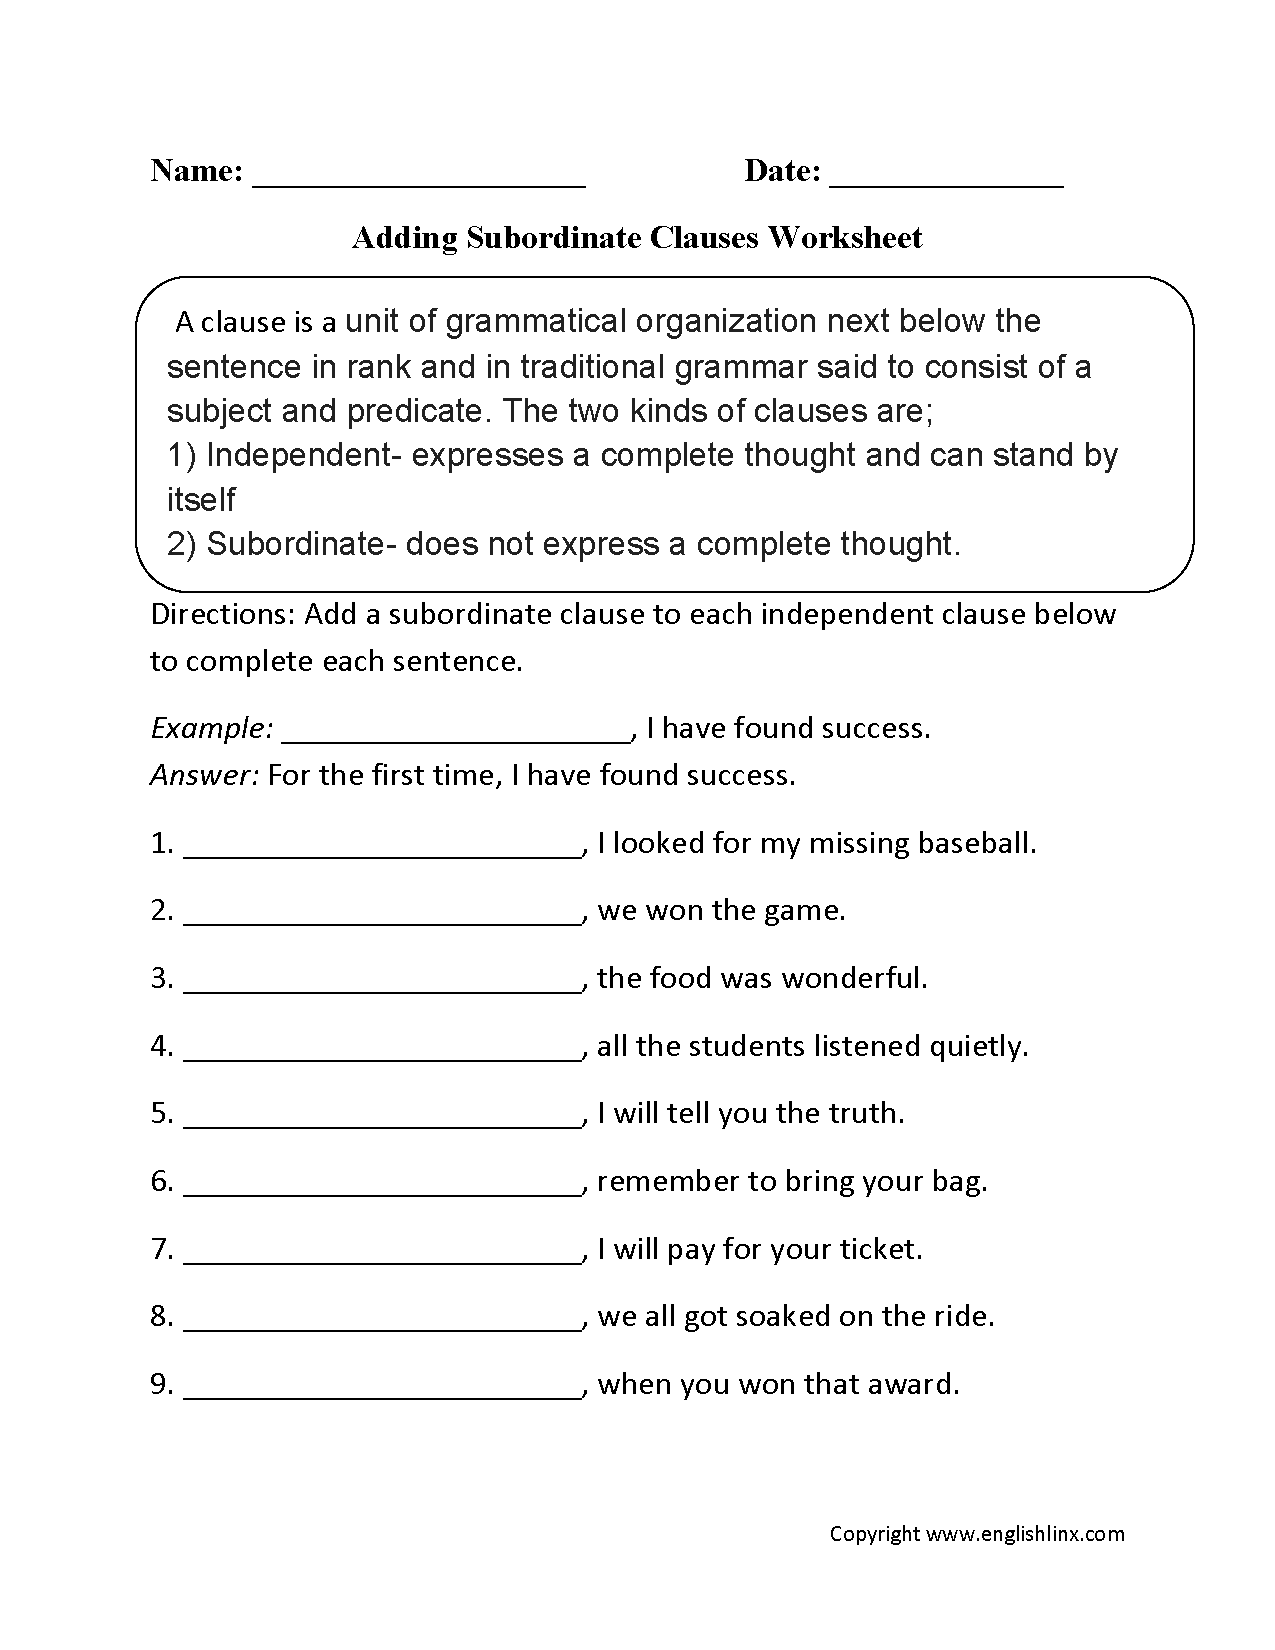 Worksheets Ged Grammar Worksheets adding subordinate clauses worksheet reading and writing these clause worksheets are great for working with use the beginner intermediate or advanced level